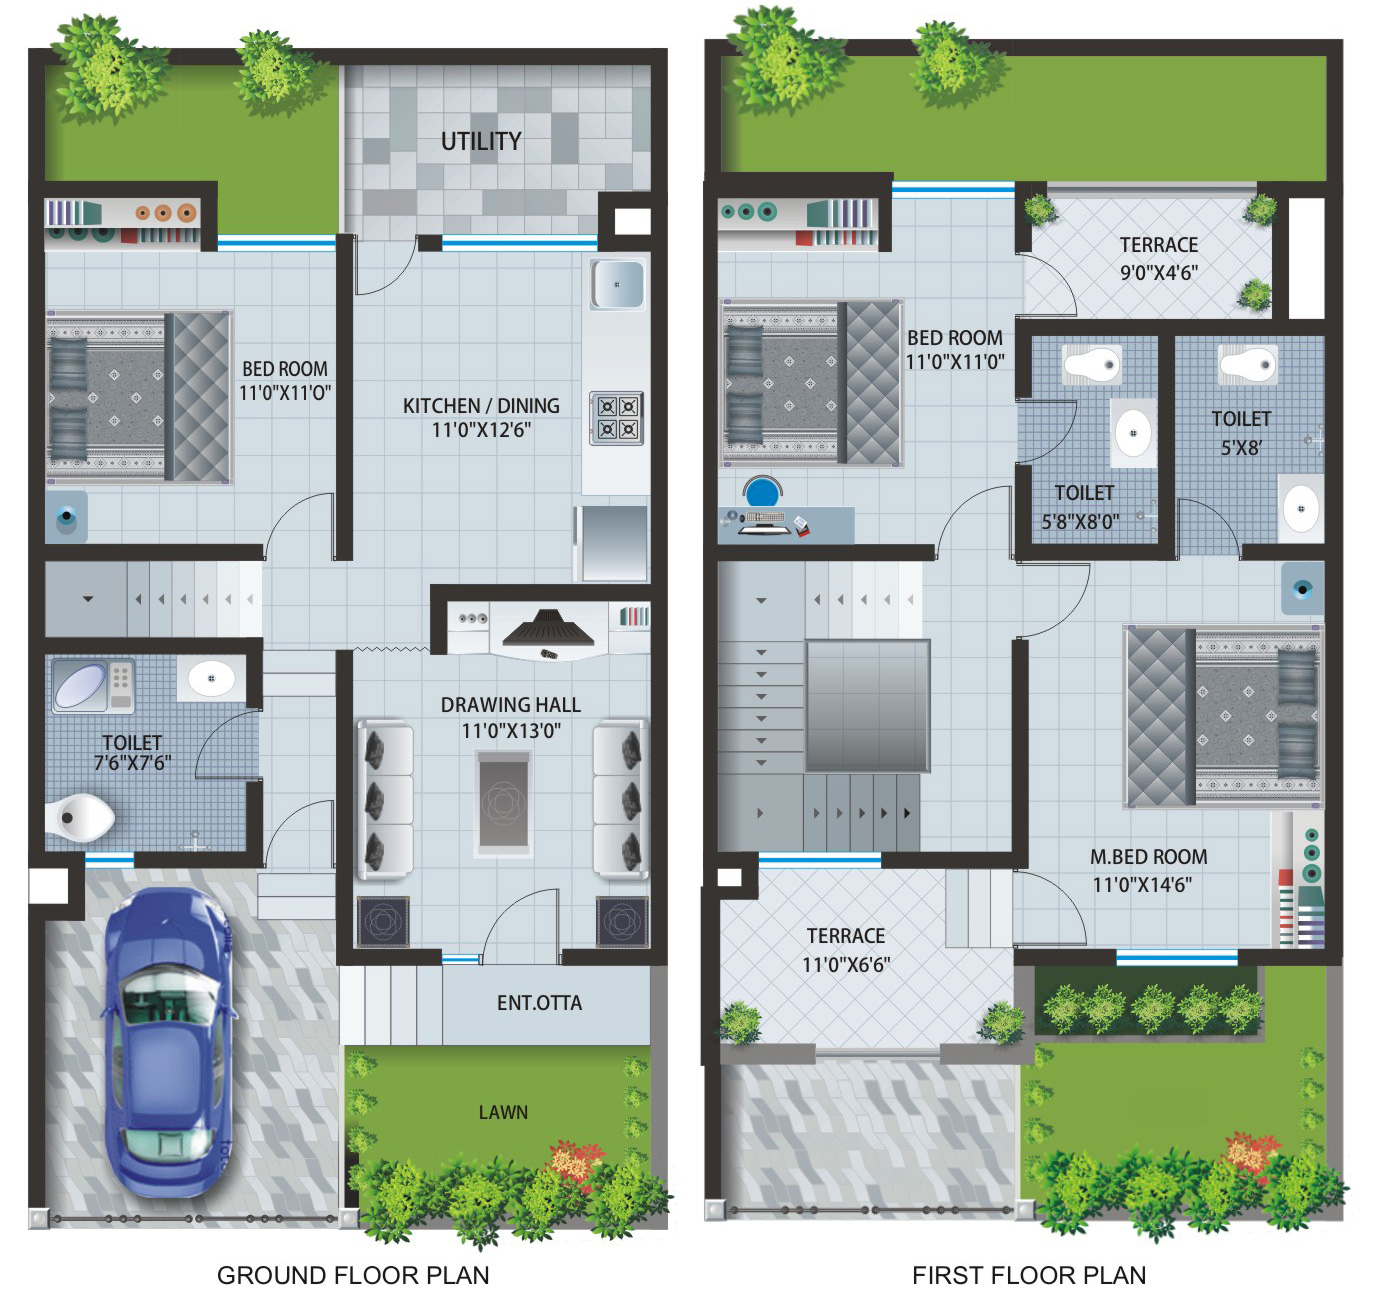 Row house layout plan patel pride aurangabad for Home design plans